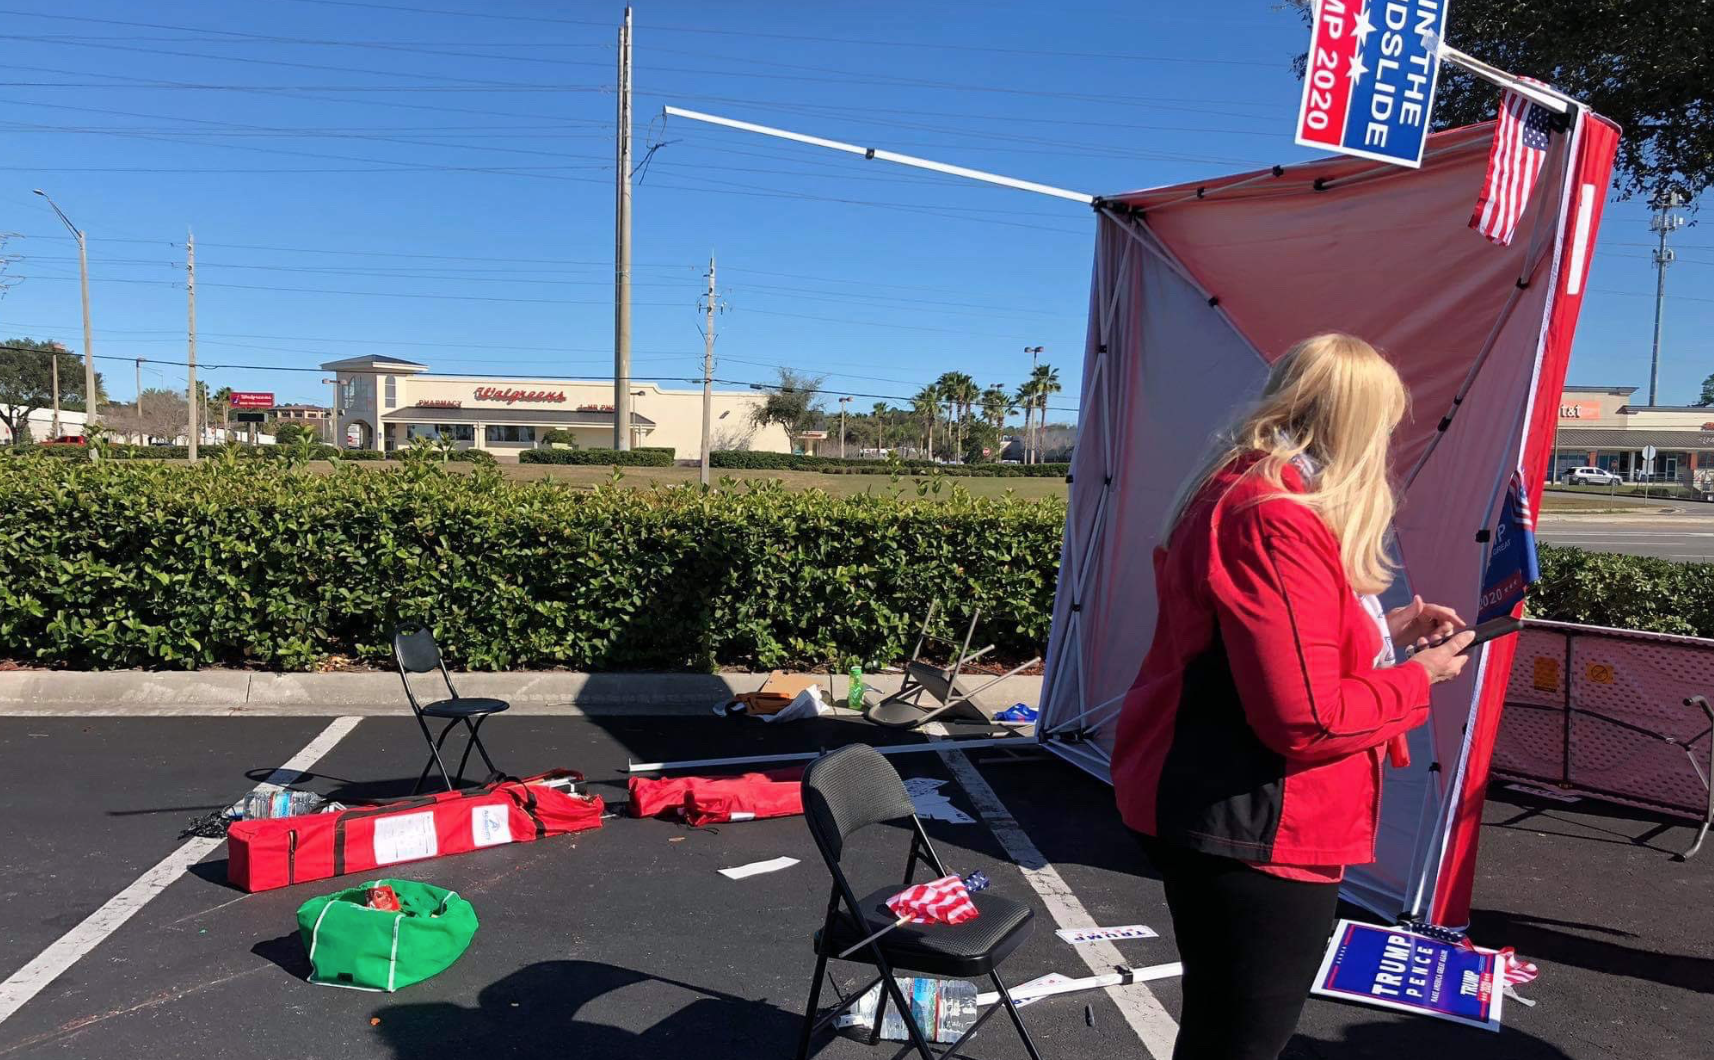 Police: Florida driver intentionally plows into Republican voter registration booth